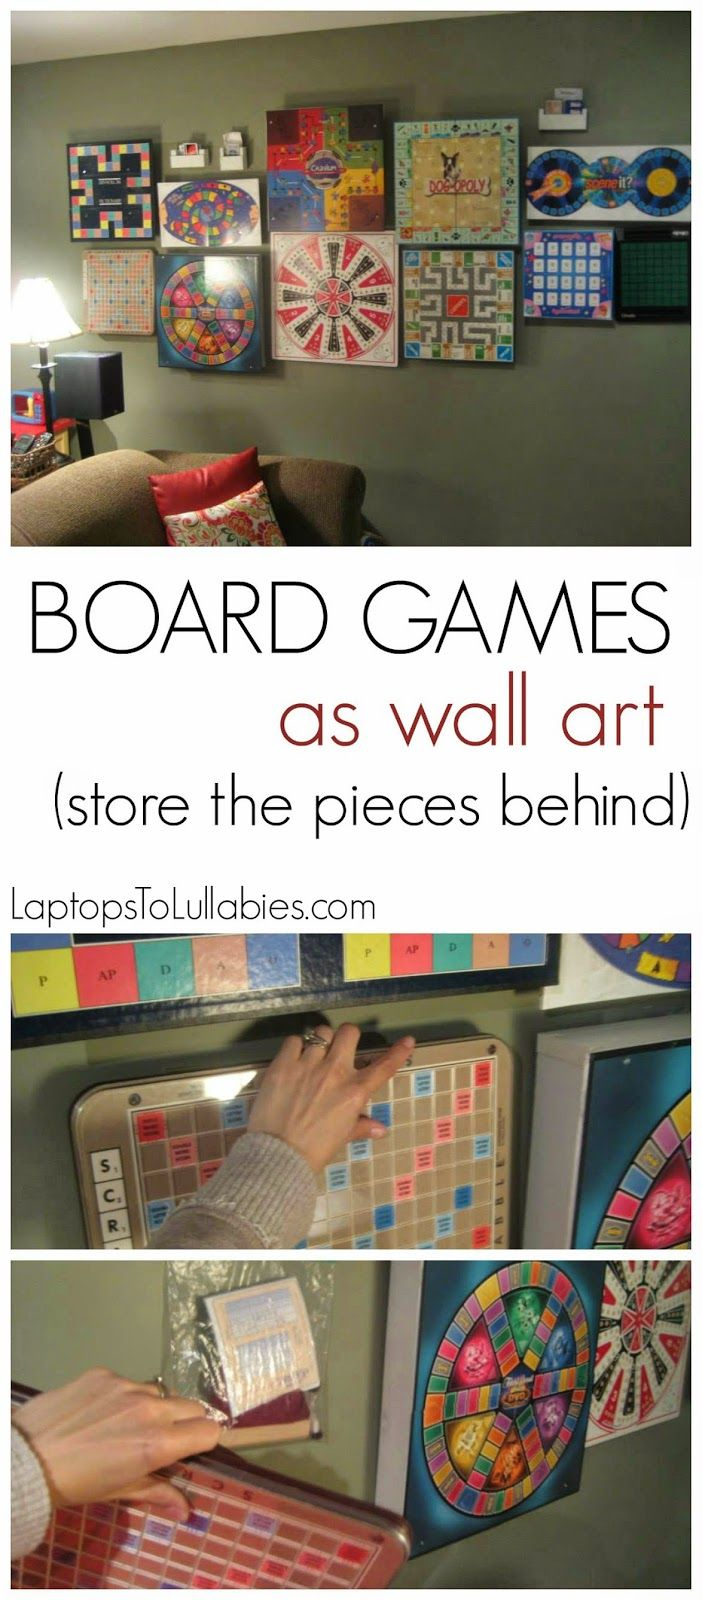 Basement kids game room - Board Games On The Wall What A Great Idea The Game Pieces Are Stored On The Back So You Can Simply Take The Game Down To Play